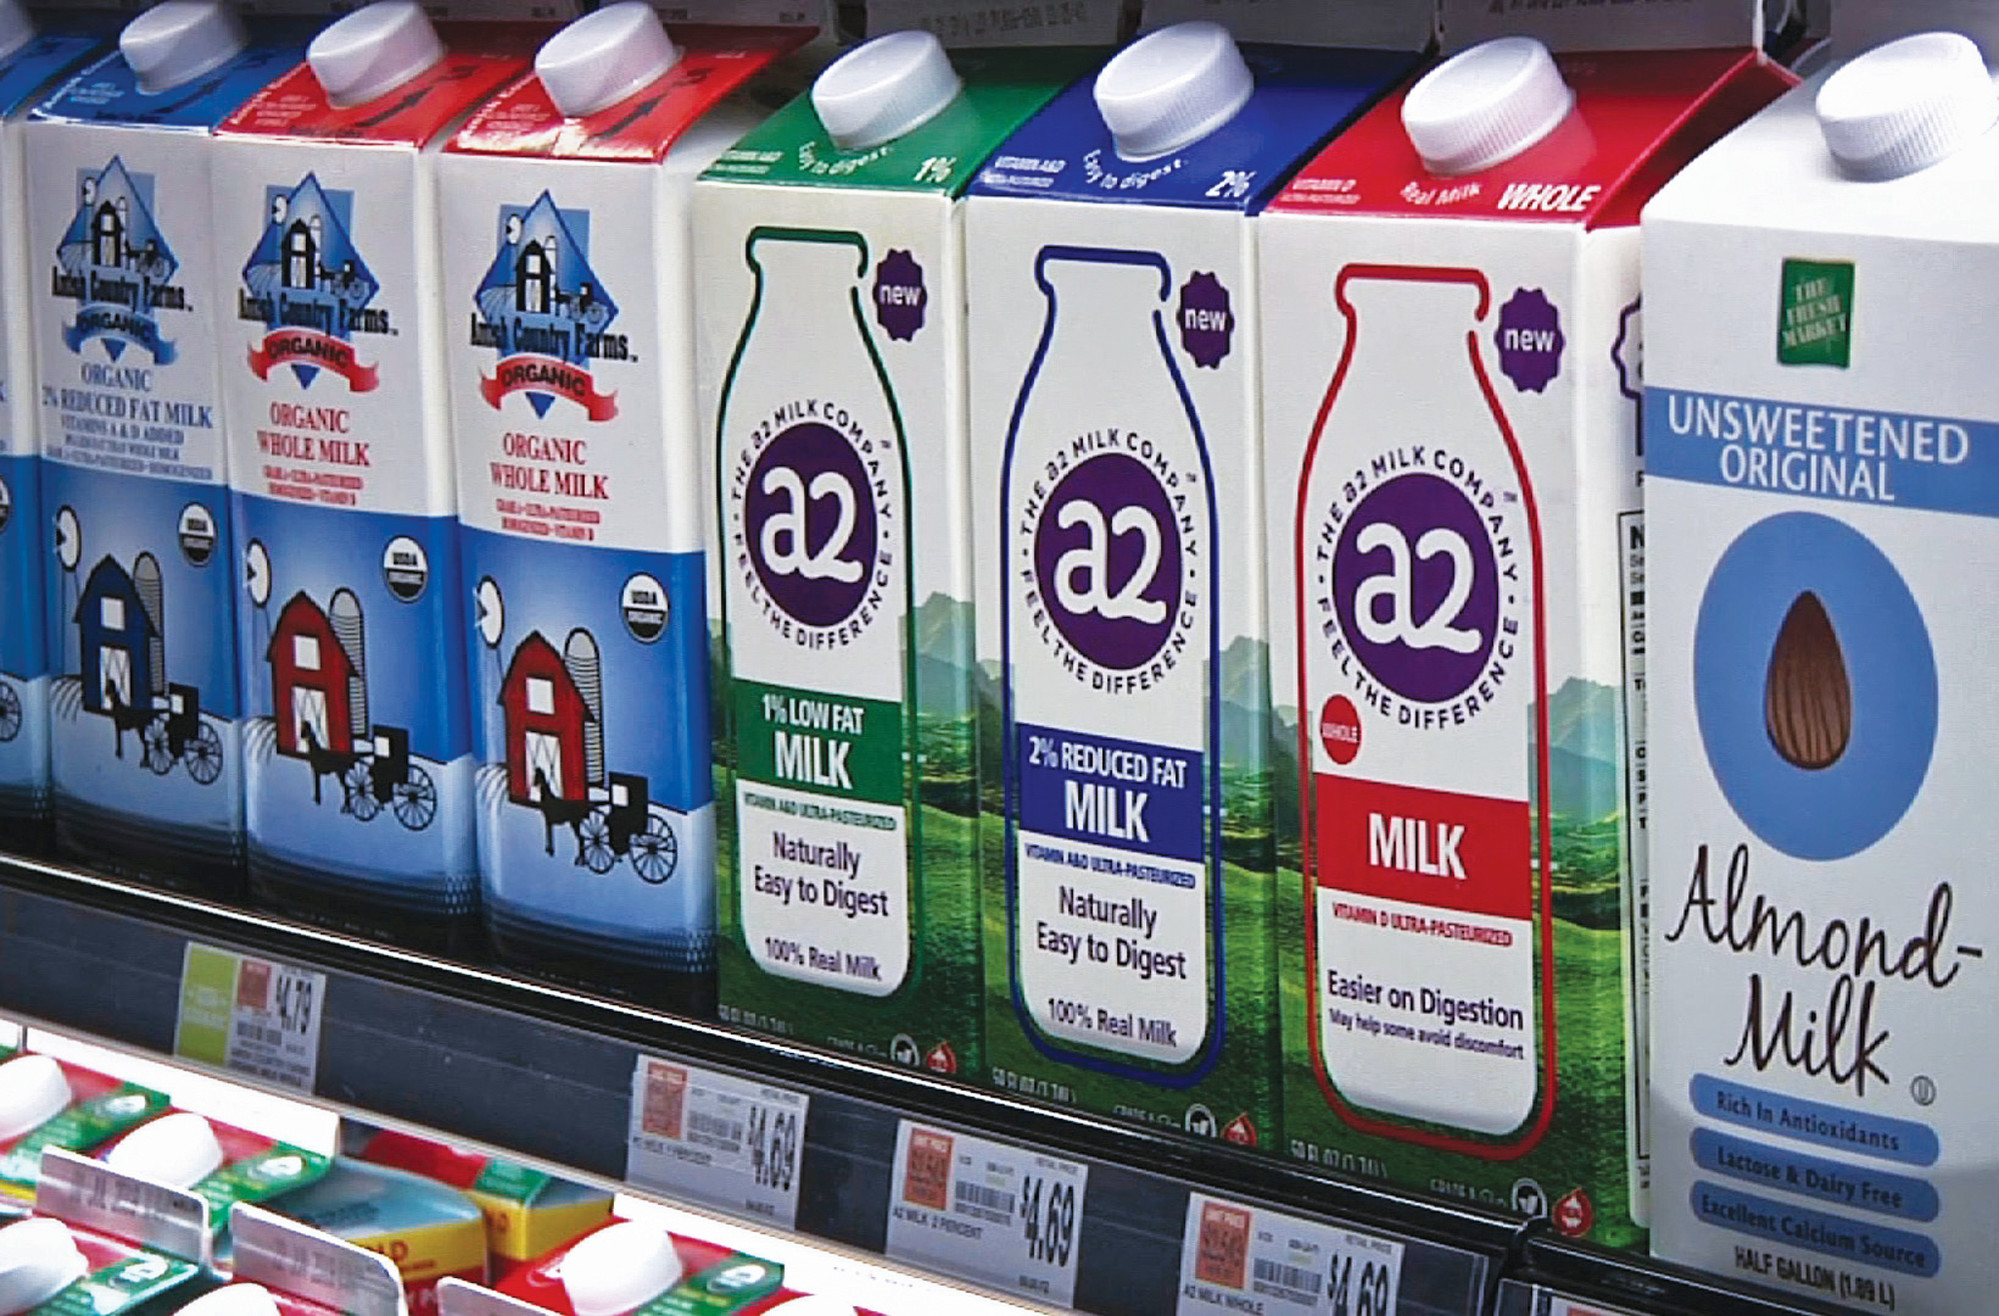 PHOTOS BY THE ASSOCIATED PRESSA2 milk is displayed on the shelf at The Fresh Market in Latham, New York. So-called A2 milk is showing up on more supermarket shelves.